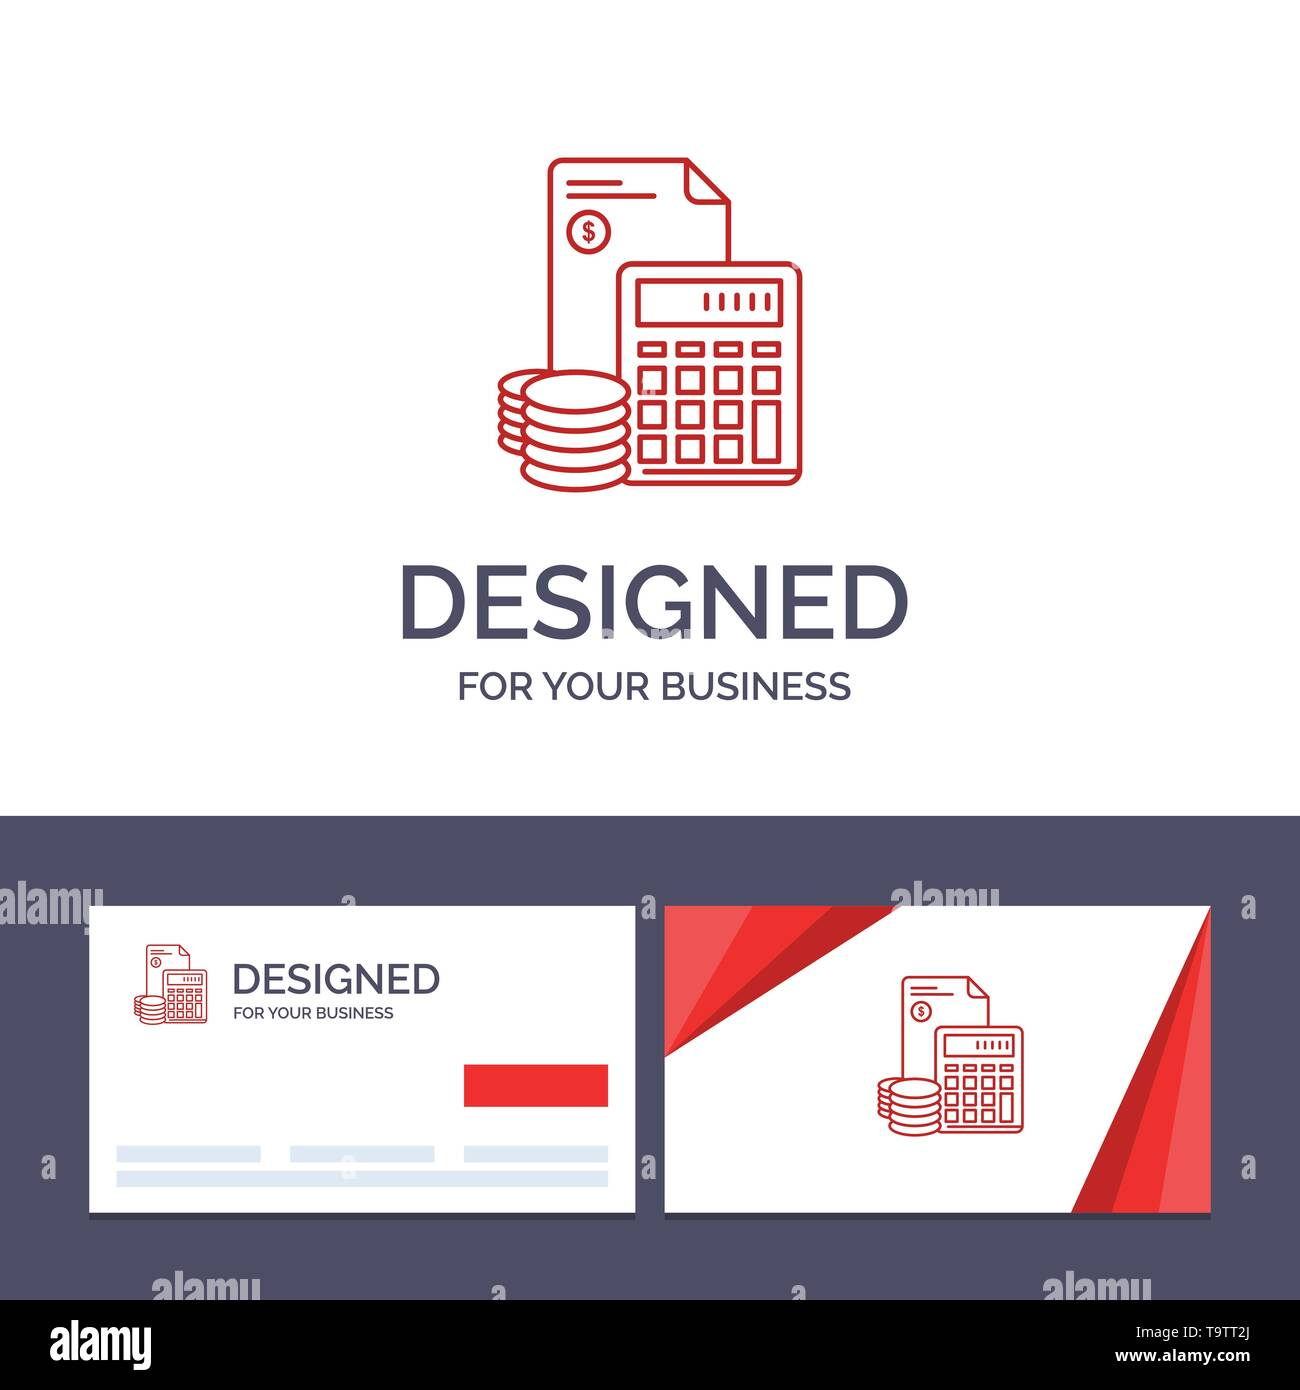 Creative Business Card and Logo template Investment, Accumulation, Business, Debt, Savings, Calculator, Coins Vector Illustration - Stock Image